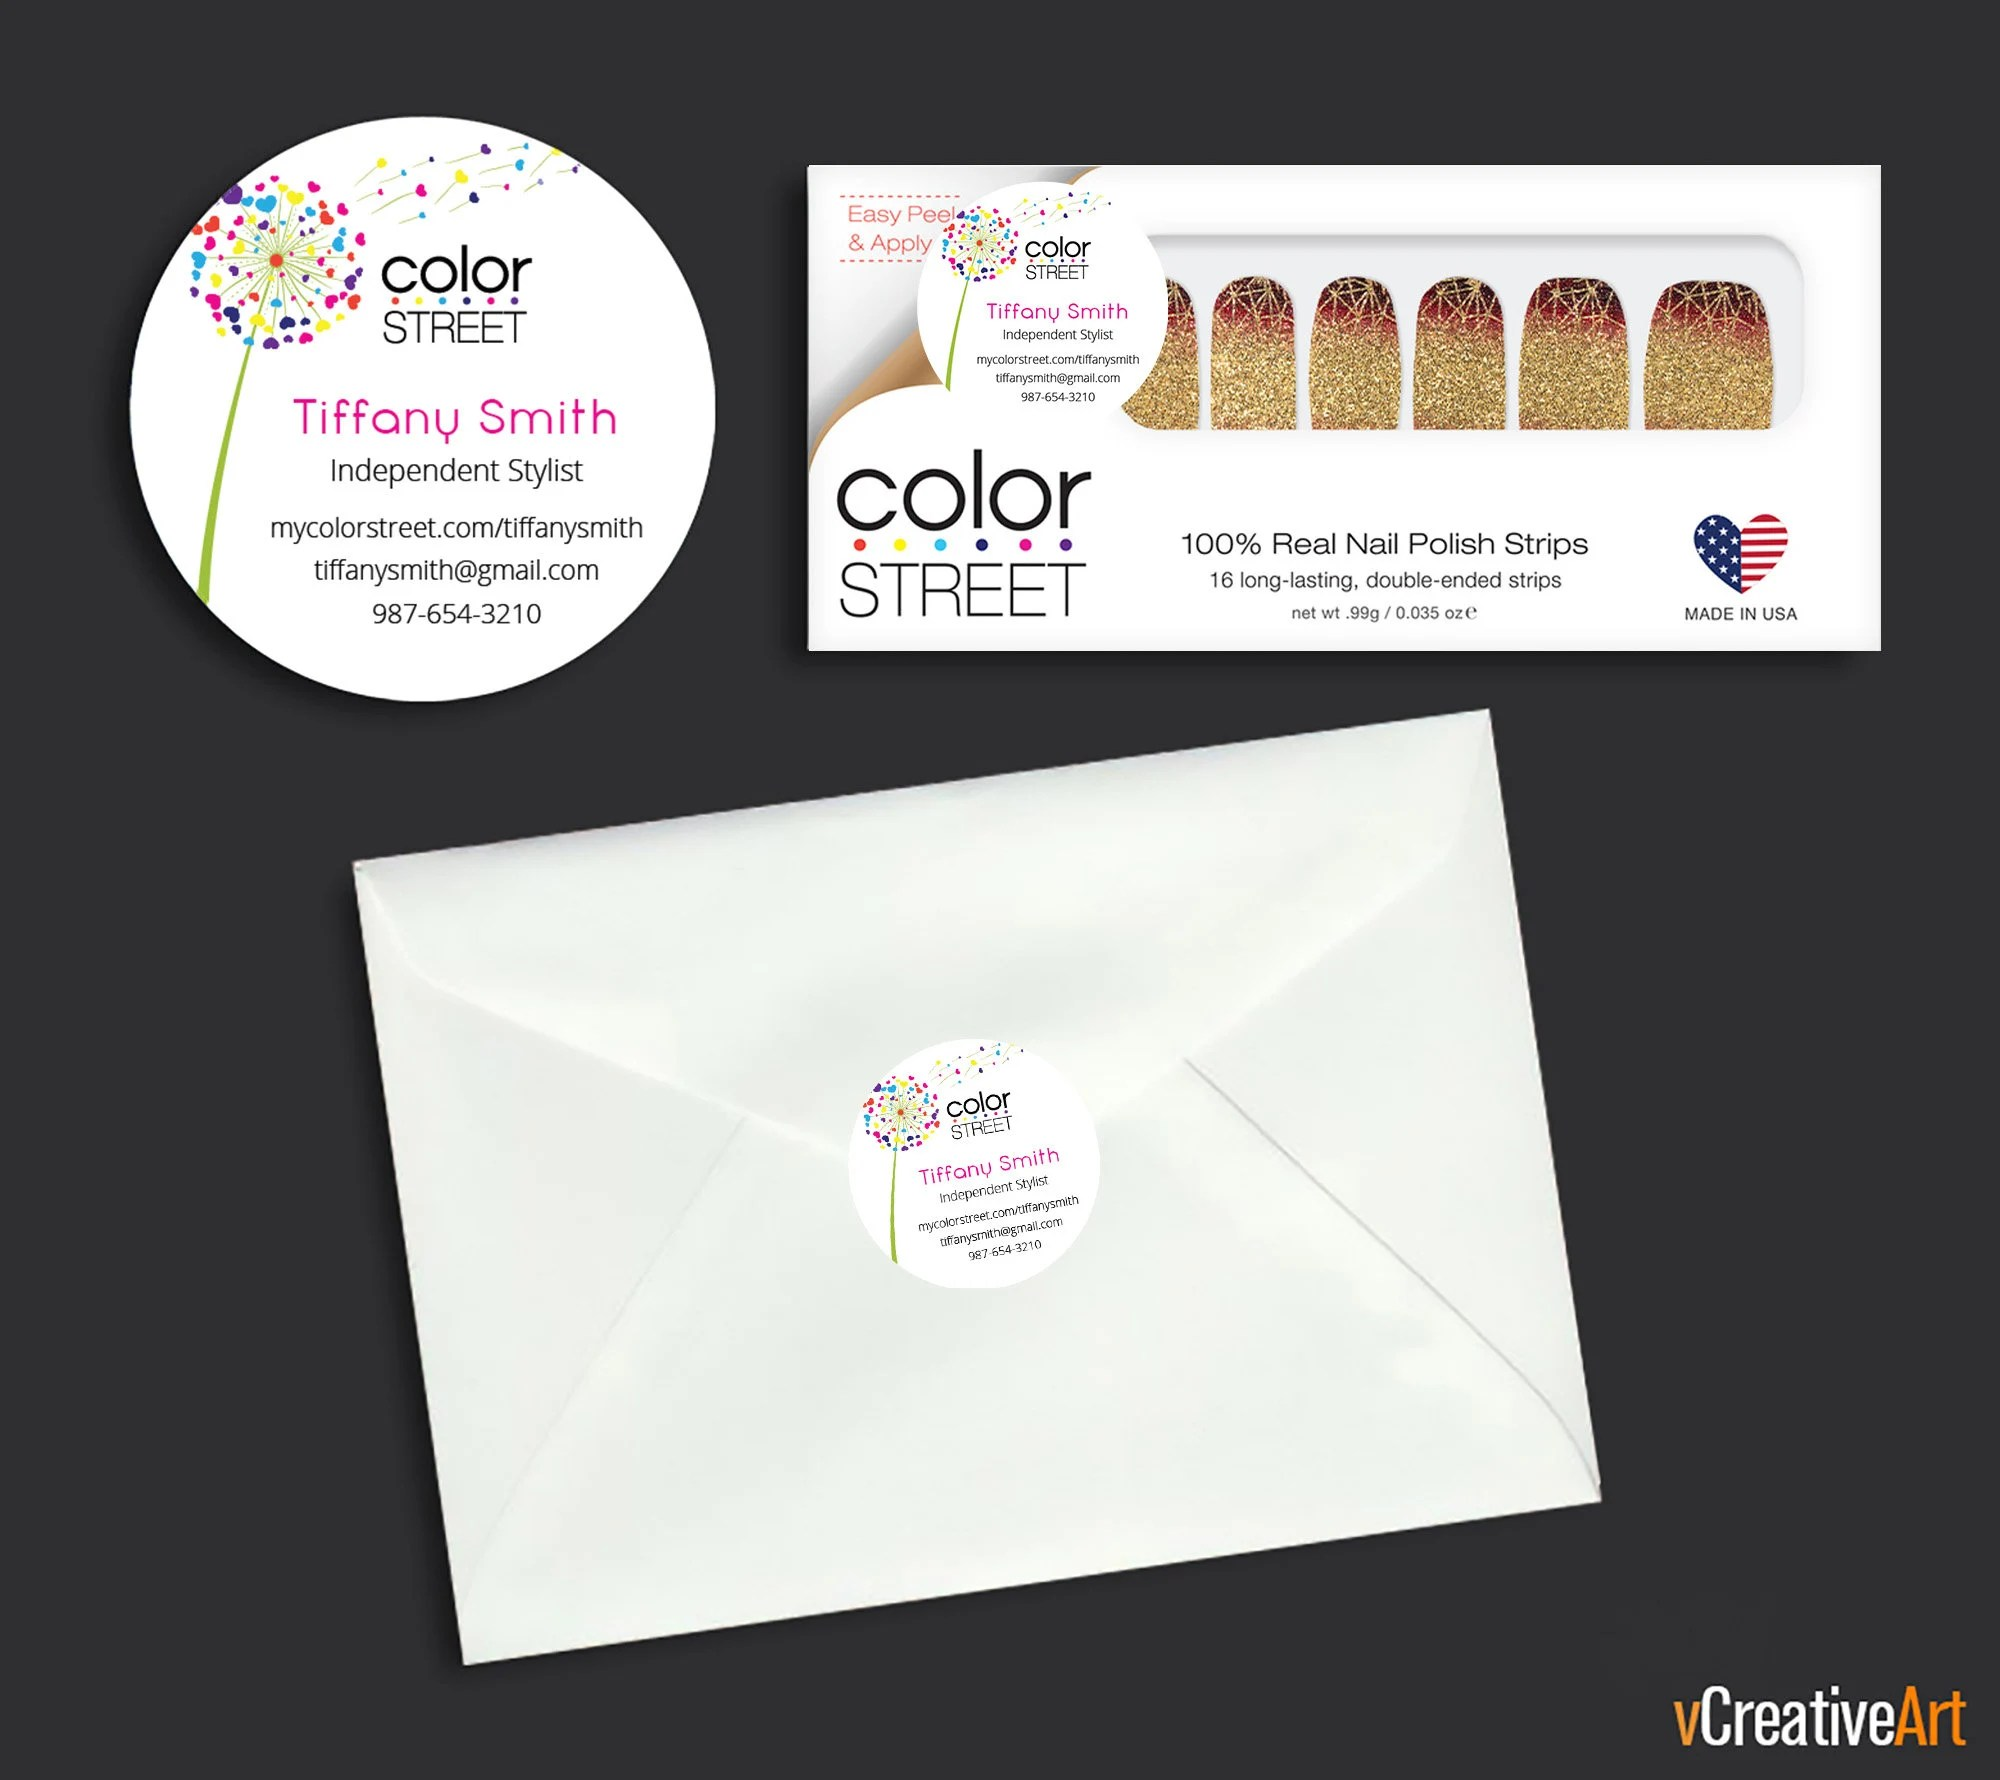 Printable Color Street Stickers Color Street Envelope Seals Color Street Nail Mail Stickers Color Street Business Cards Cs13